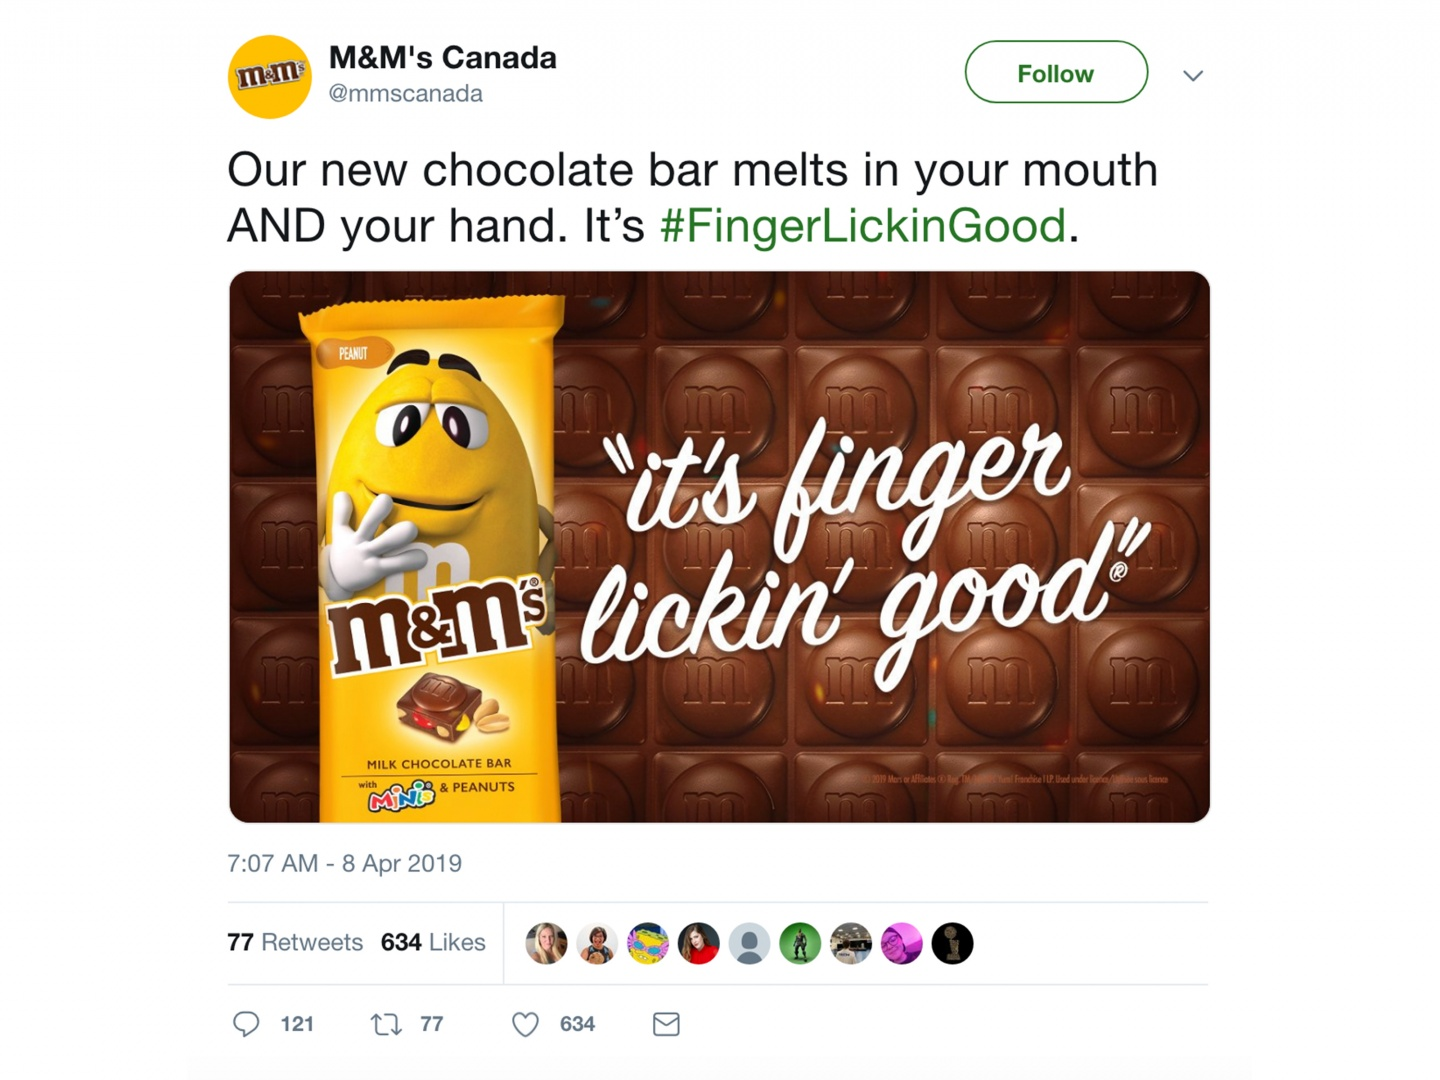 M&M's Finger Lickin' Good Thumbnail